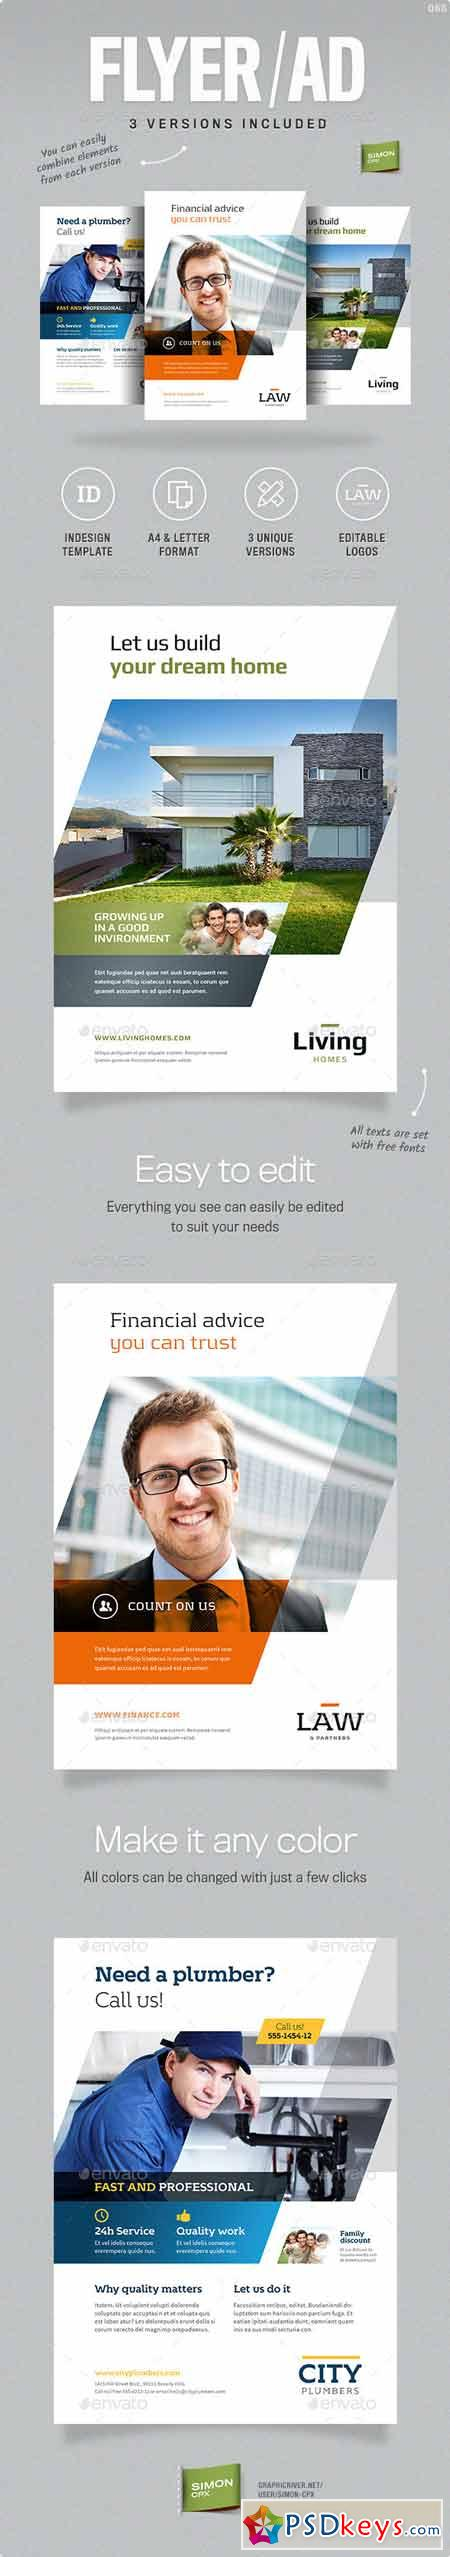 Business Flyer or Ad template 12068993